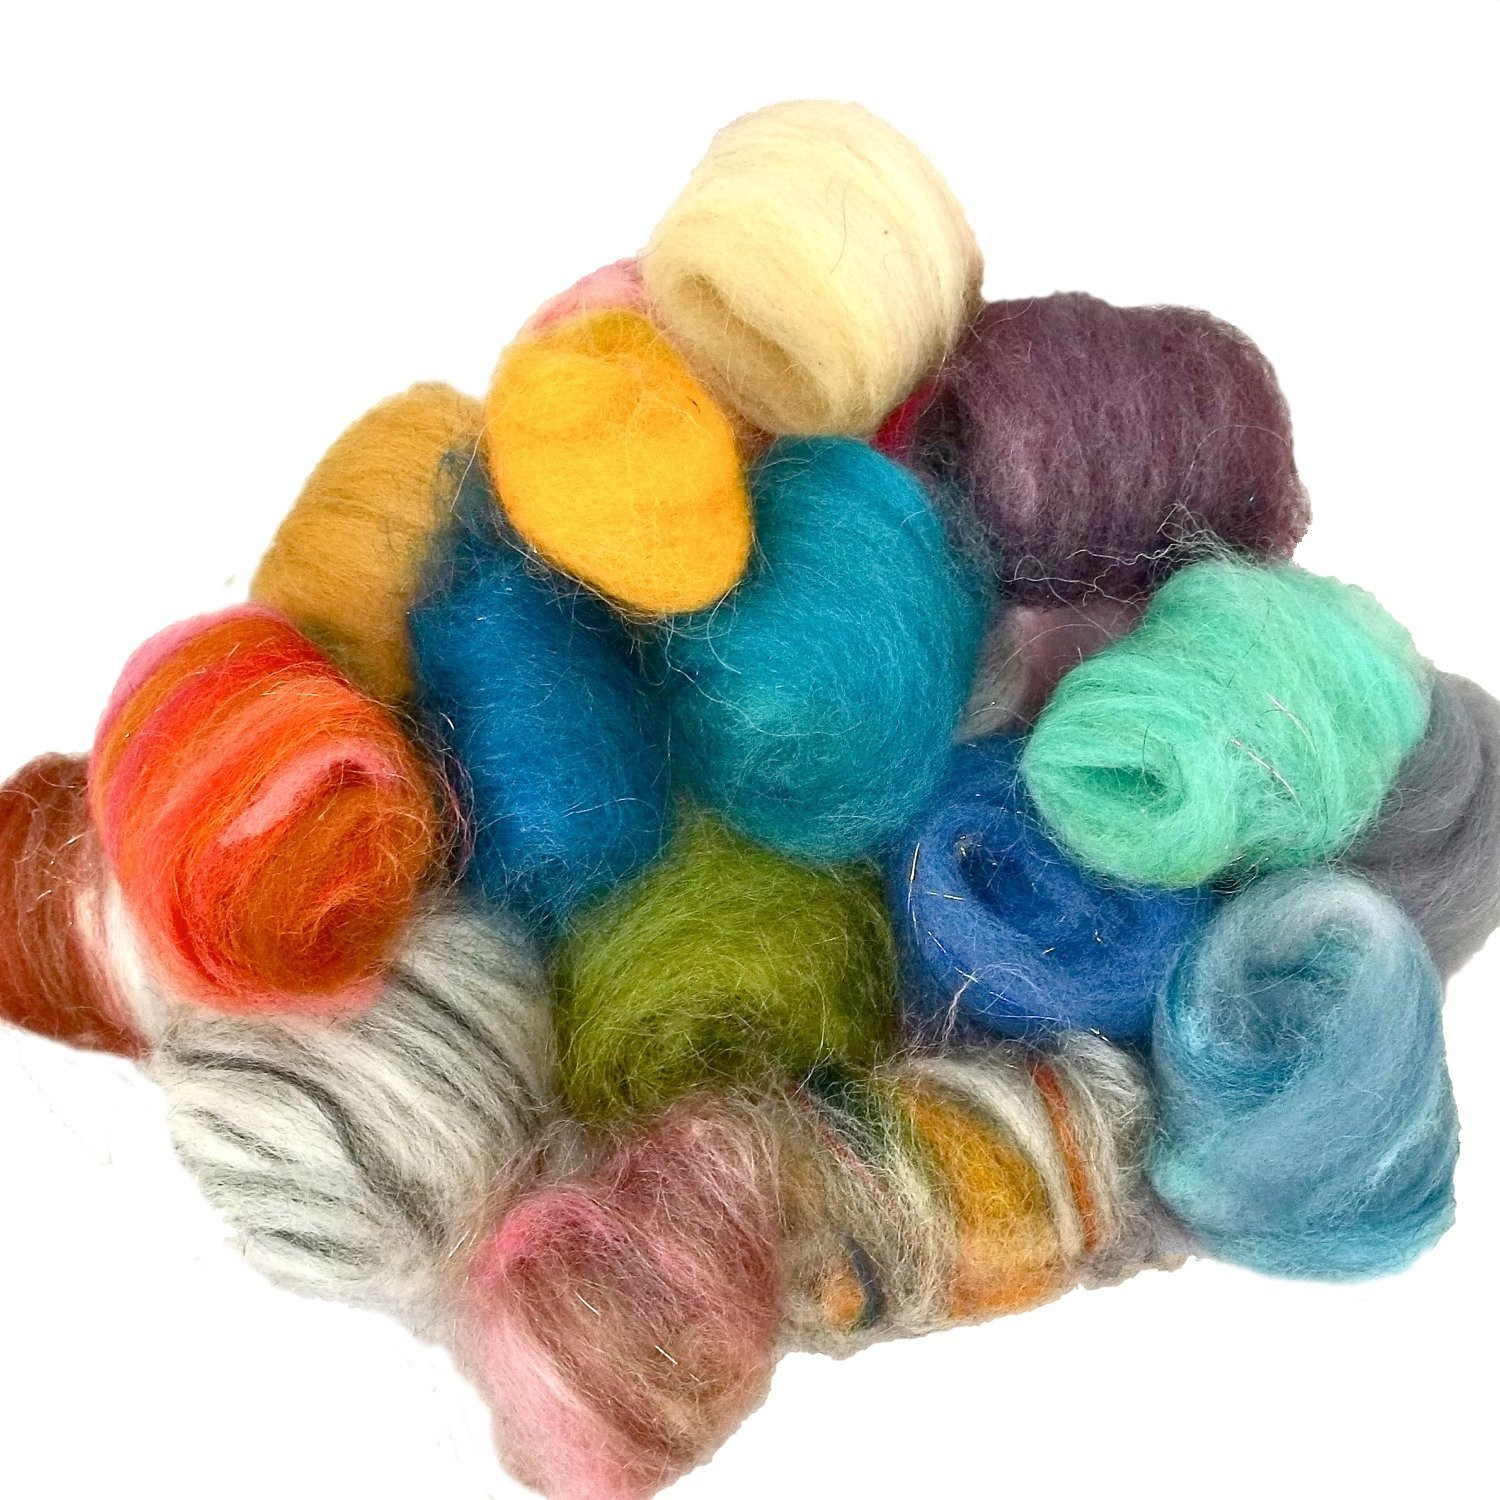 Beautiful Needle Felting Wool Kit Roving Fiber Surprise Pack by Wool Roving Yarn Of Awesome 40 Pictures Wool Roving Yarn